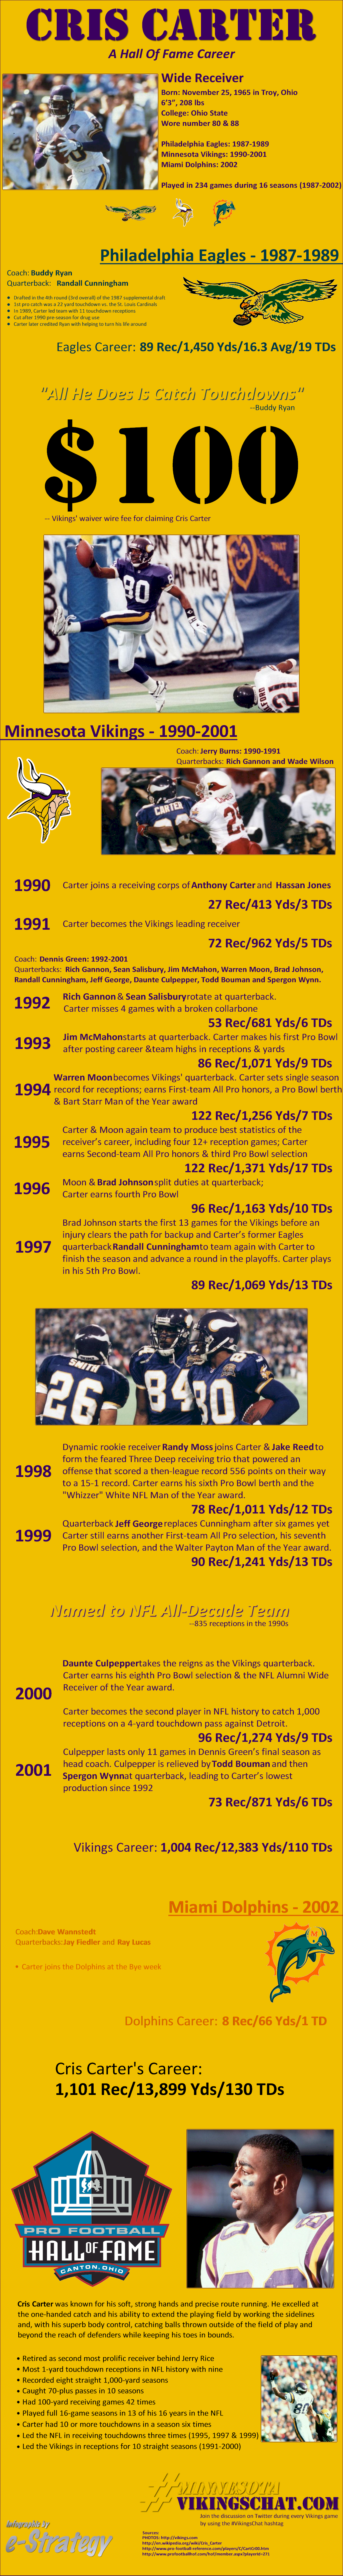 Infographic - Cris Carter's Hall Of Fame Career